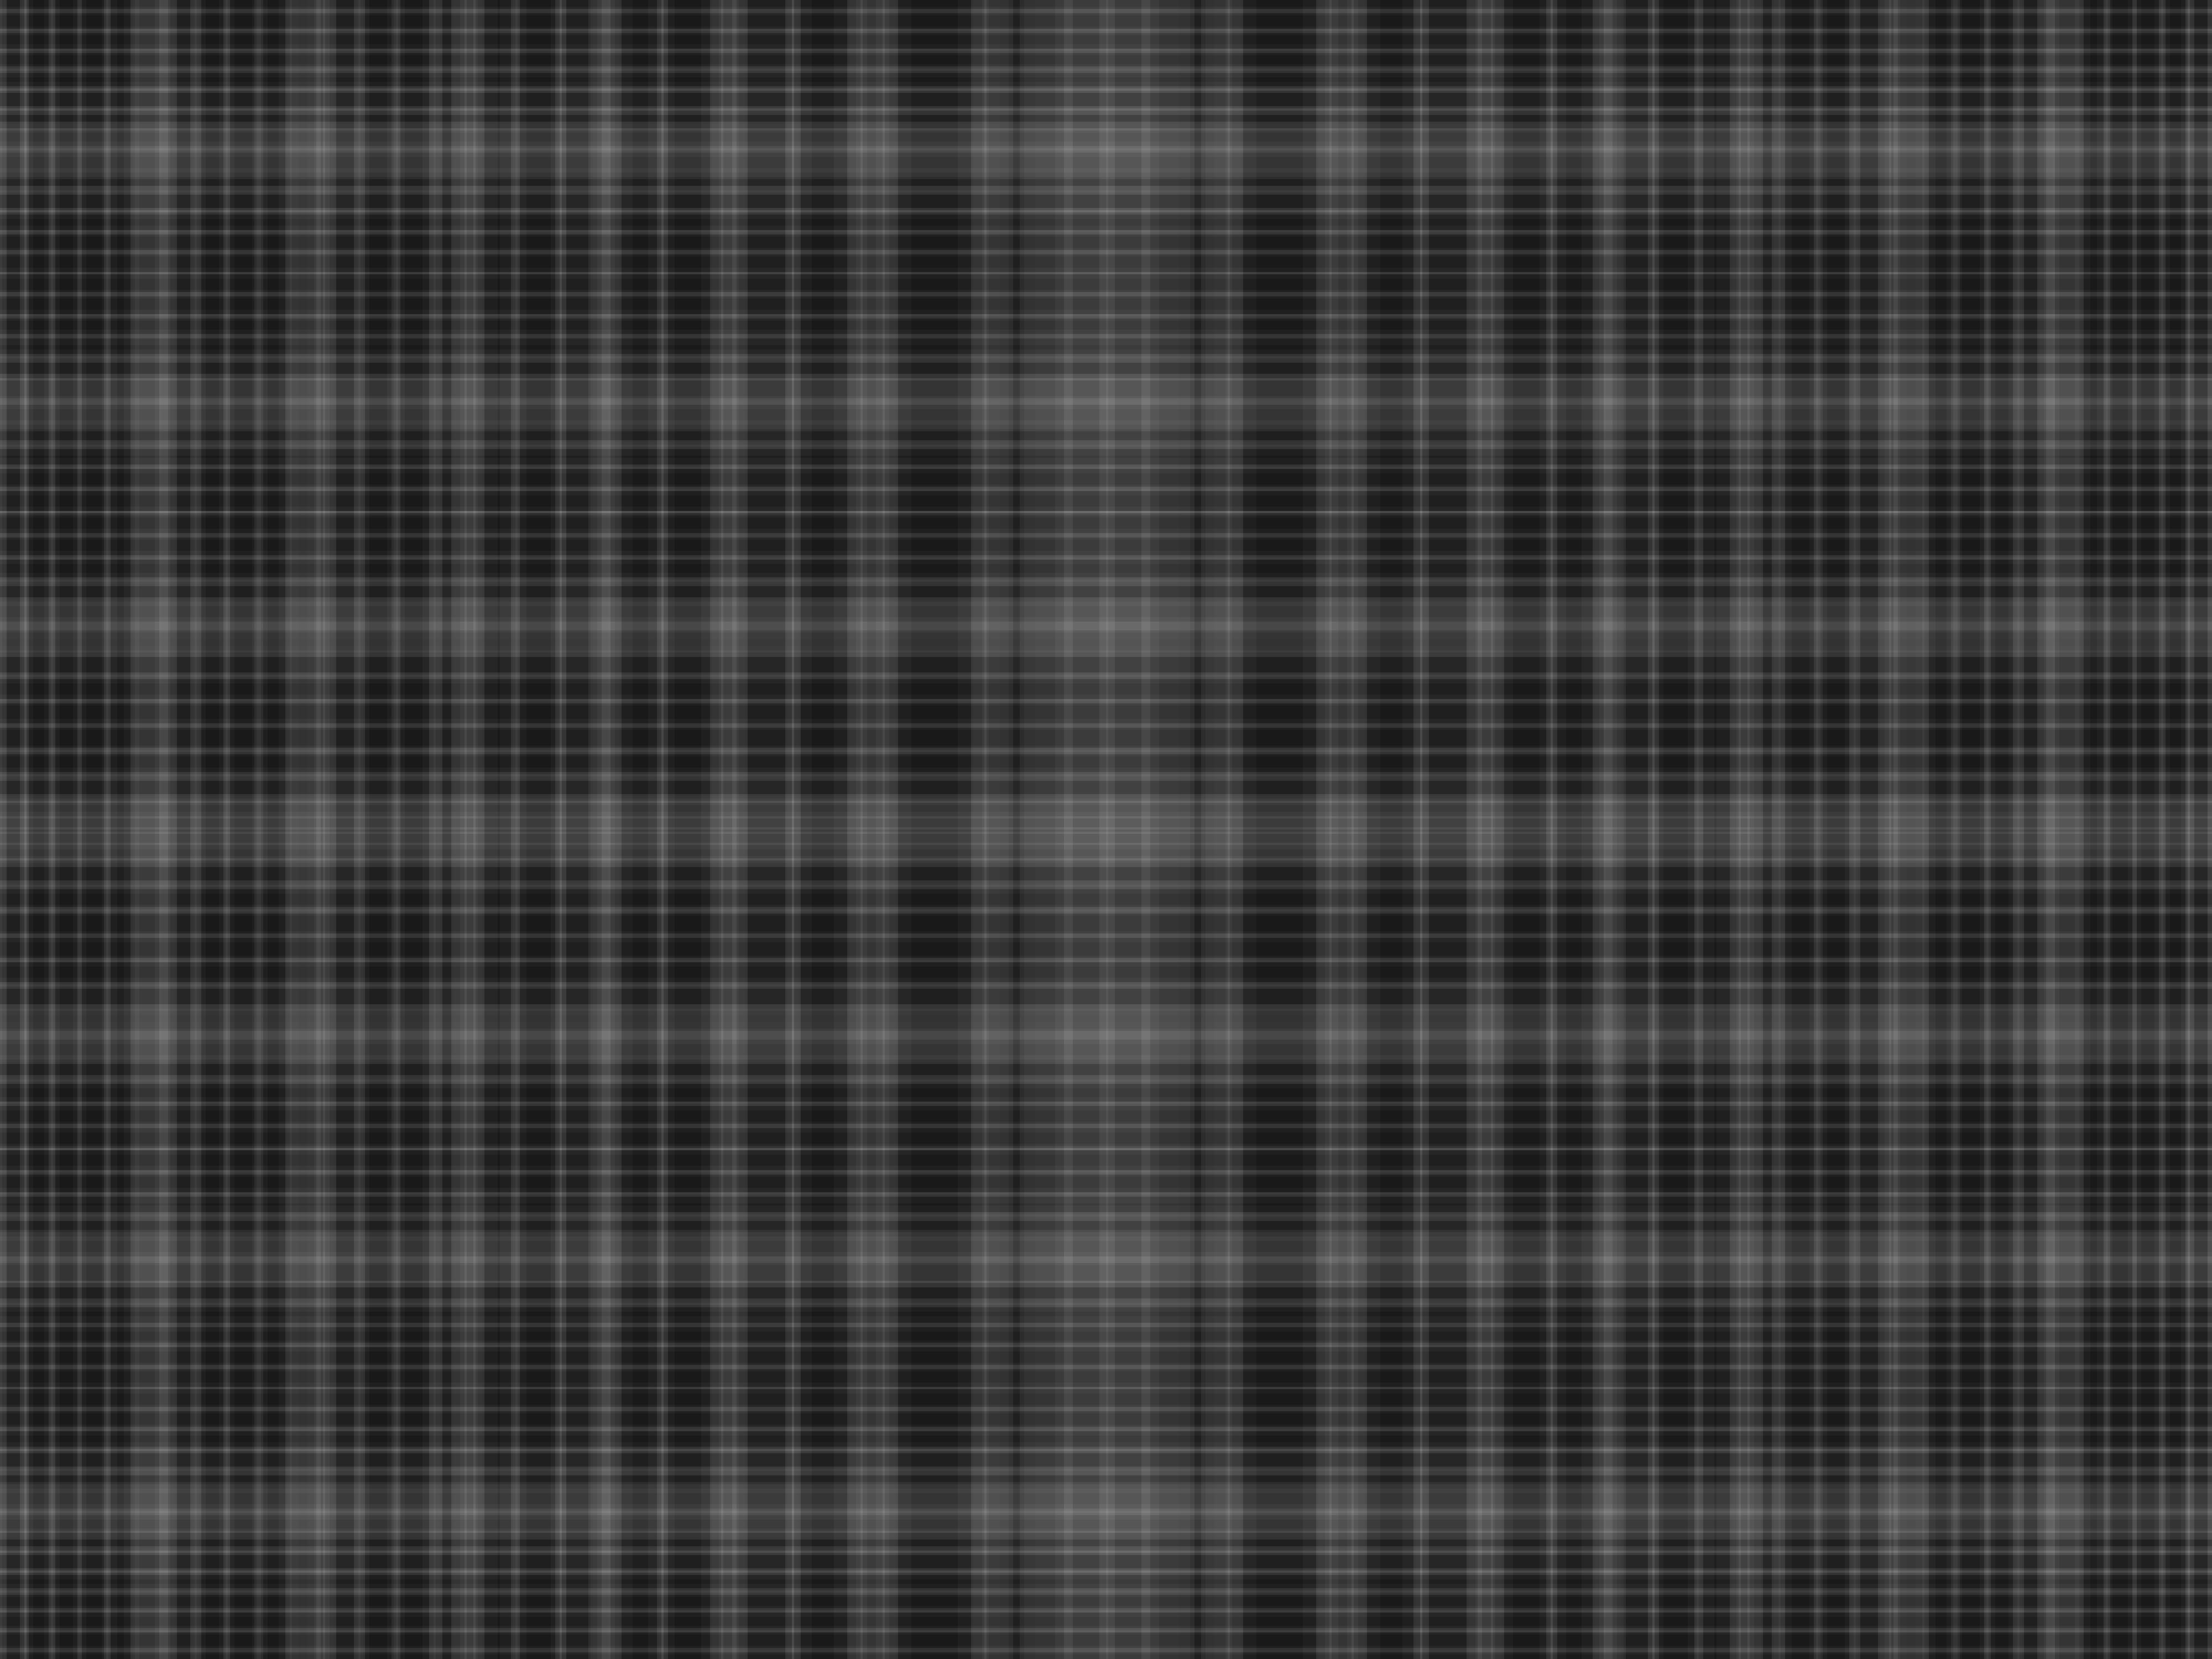 Abstract Black Pattern 4000x3000